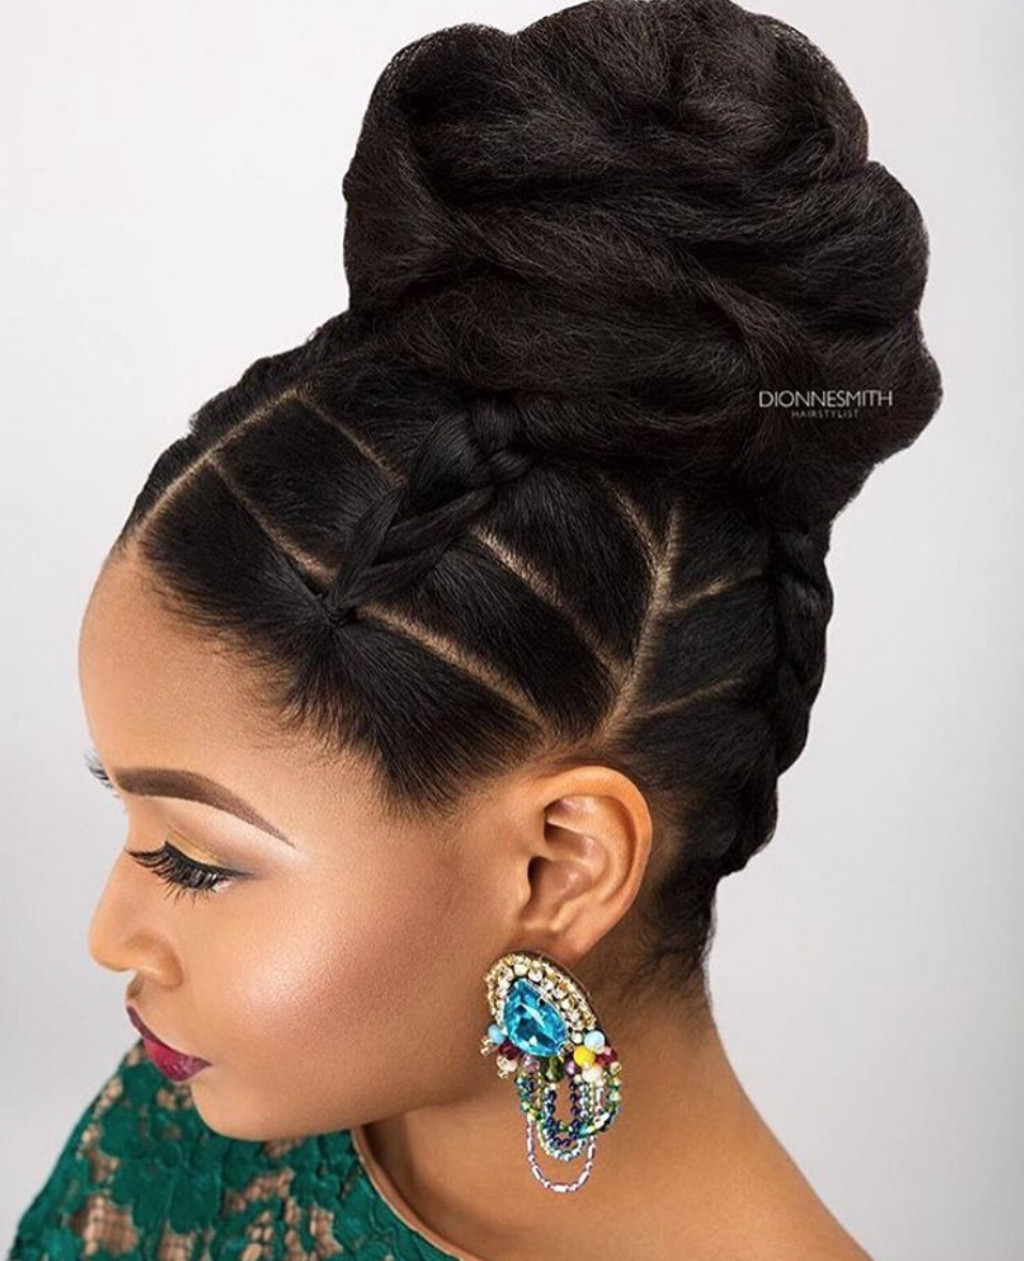 Best ideas about Black Natural Updo Hairstyles . Save or Pin Wedding Hairstyles for Black Women african american Now.